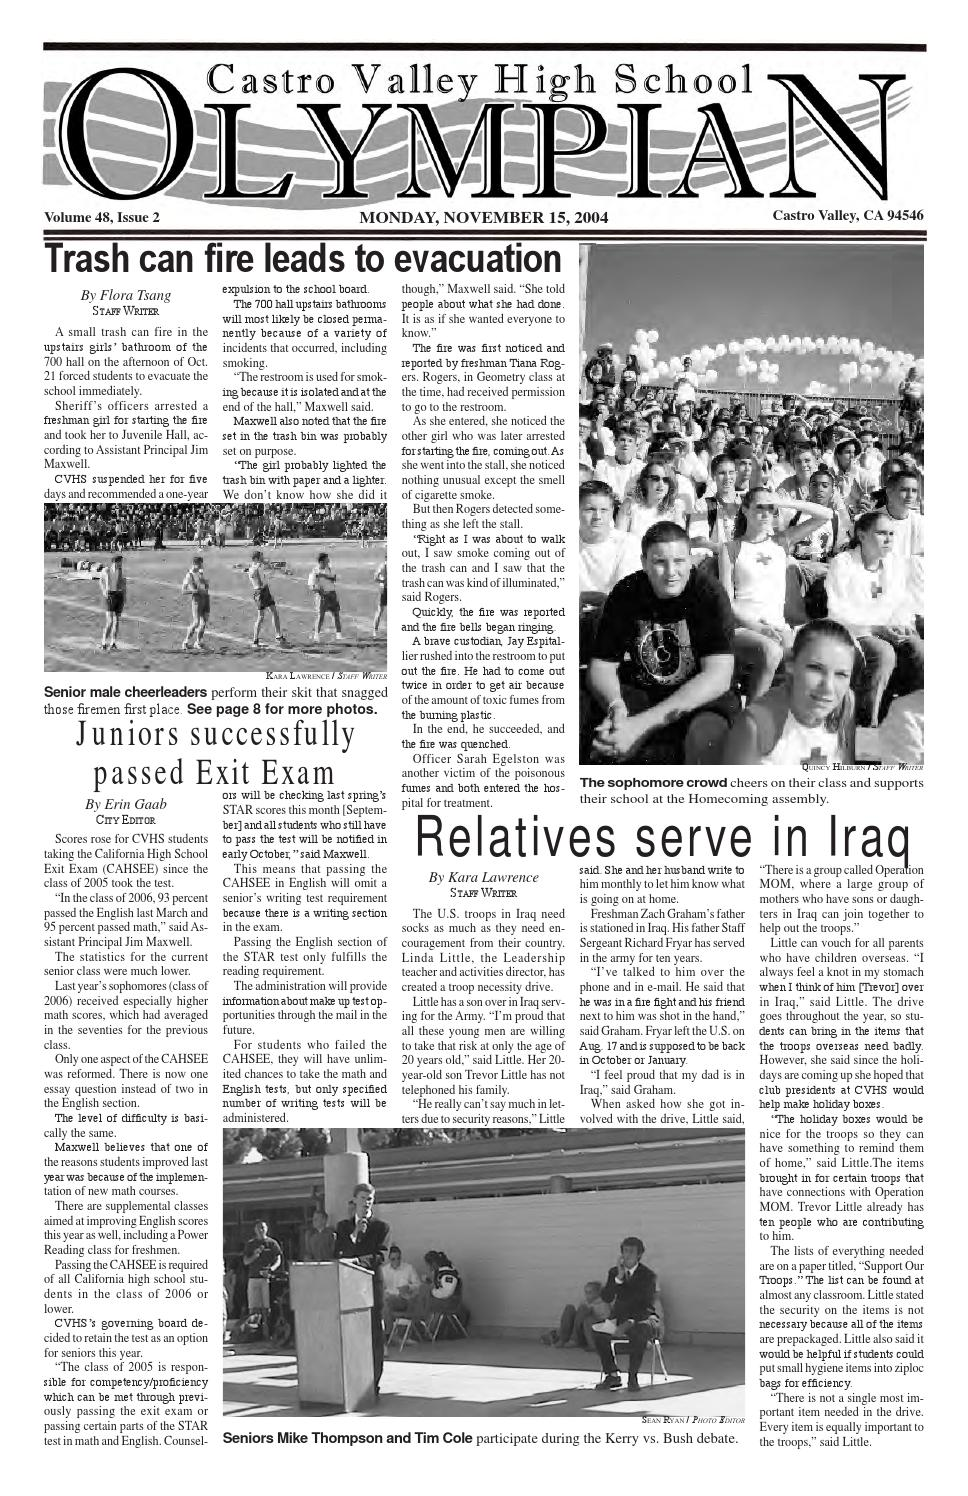 Nov 15, 2004 by The Castro Valley High School Olympian - issuu